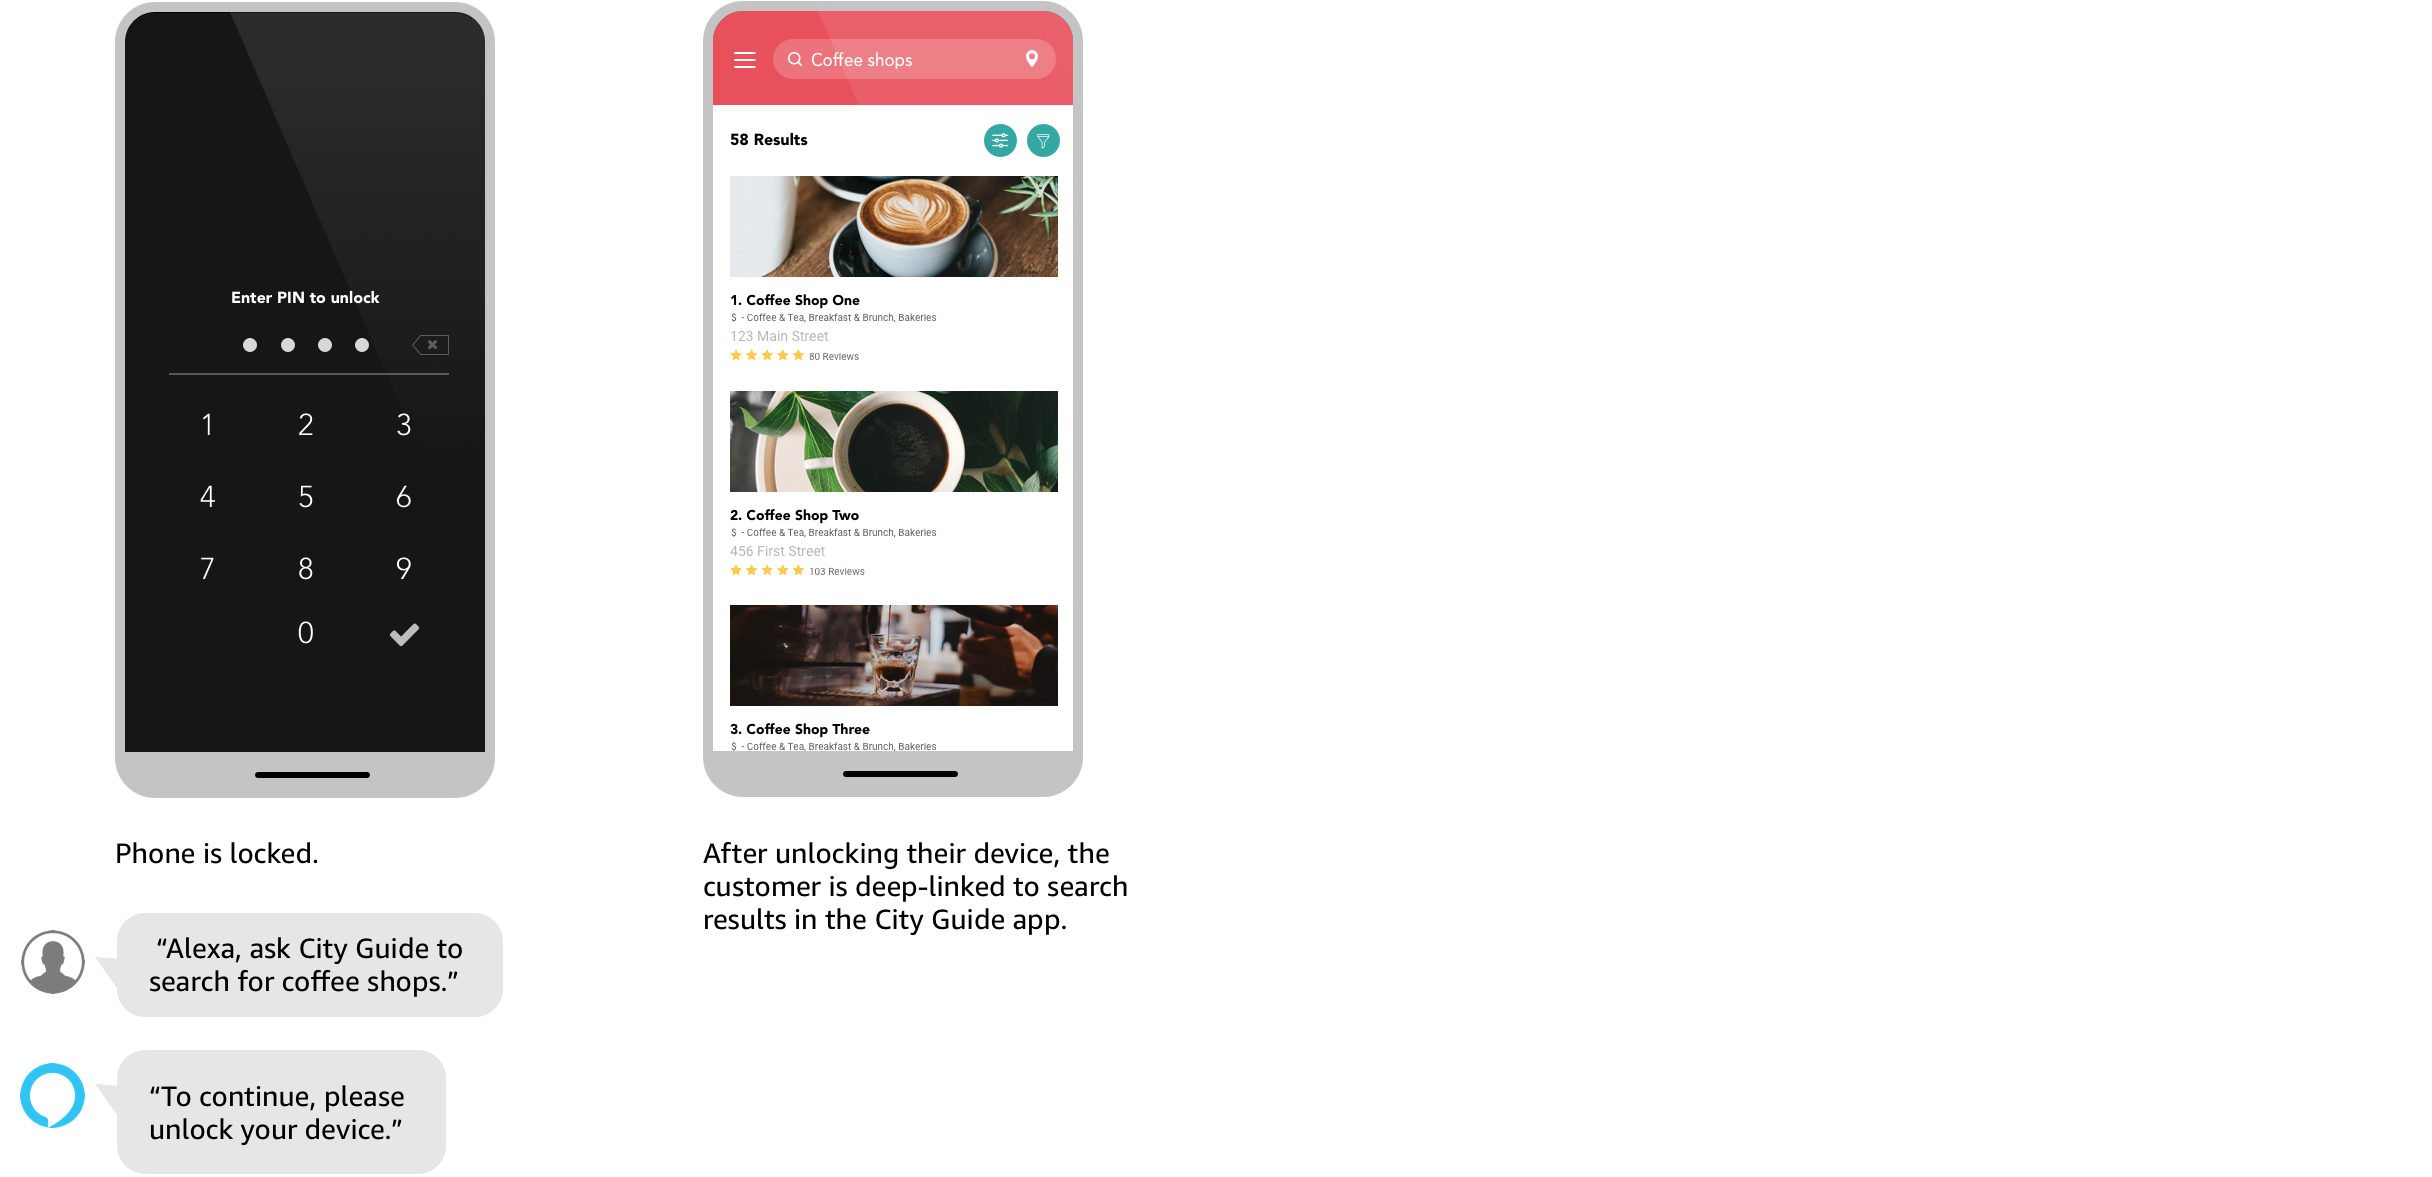 Image of the locked mobile phone experience with a default response. Customer asks Alexa to ask City Guide to search for coffee shops. Alexa responds with To continue, please unlock your device. After unlocking their device, the customer is deep-linked to the search results in the city guide app.